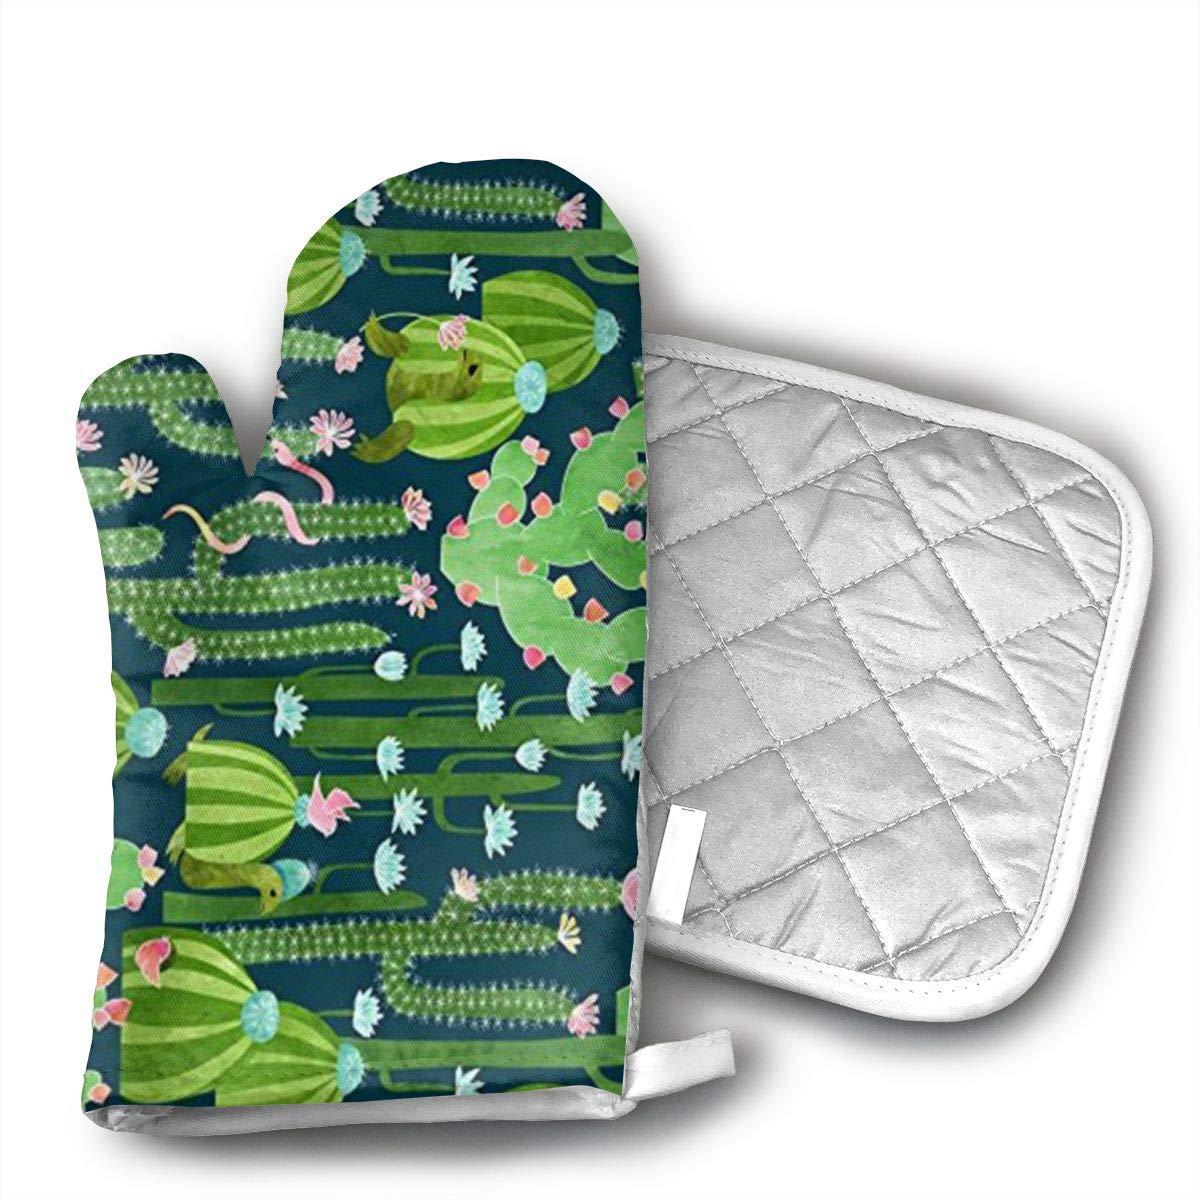 The Cactus Garden of Earthly Delights Oven Mitt Pot Holder Set Kitchen Quilted Cotton Polyester LiningOven Mitt with